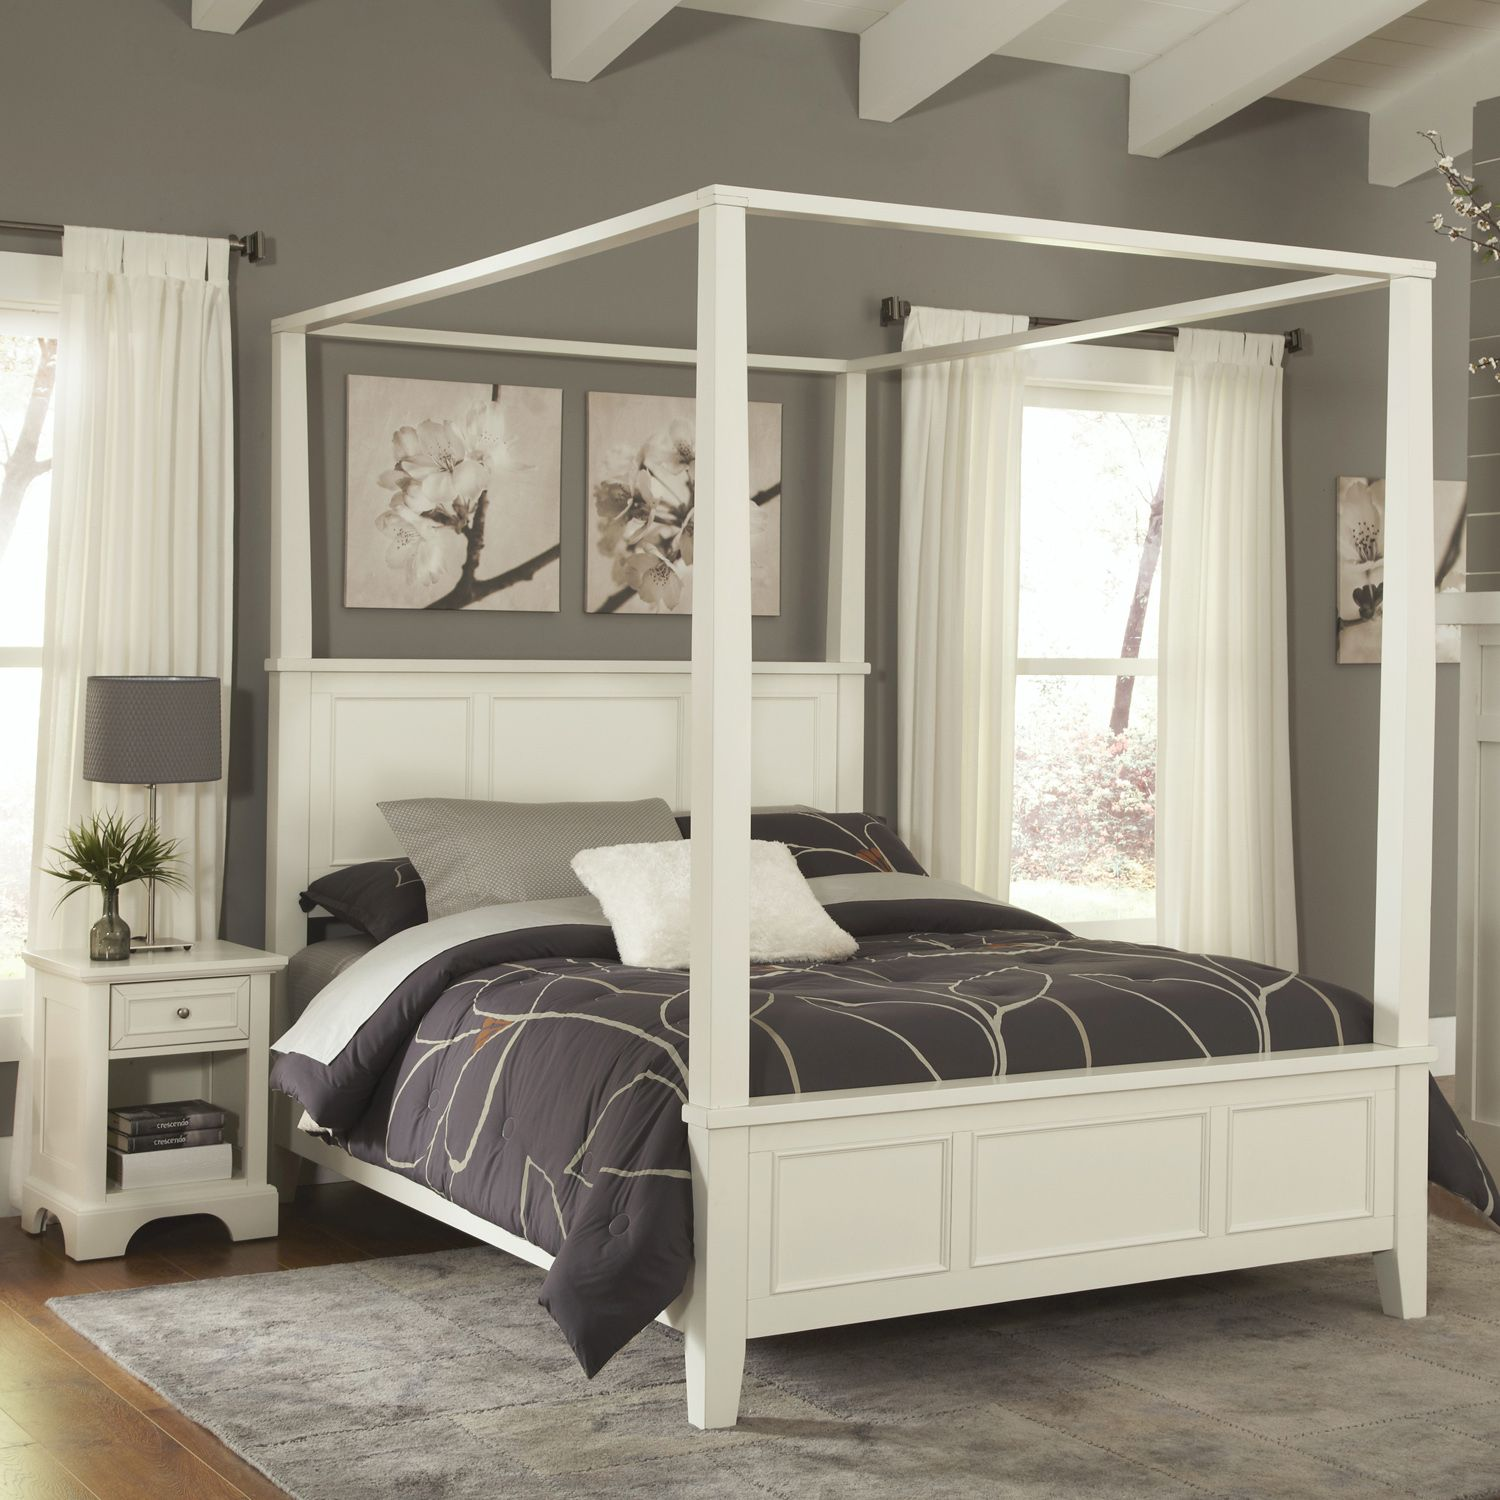 Styles Naples 4 Pc Queen Headboard Footboard Frame Canopy Bed